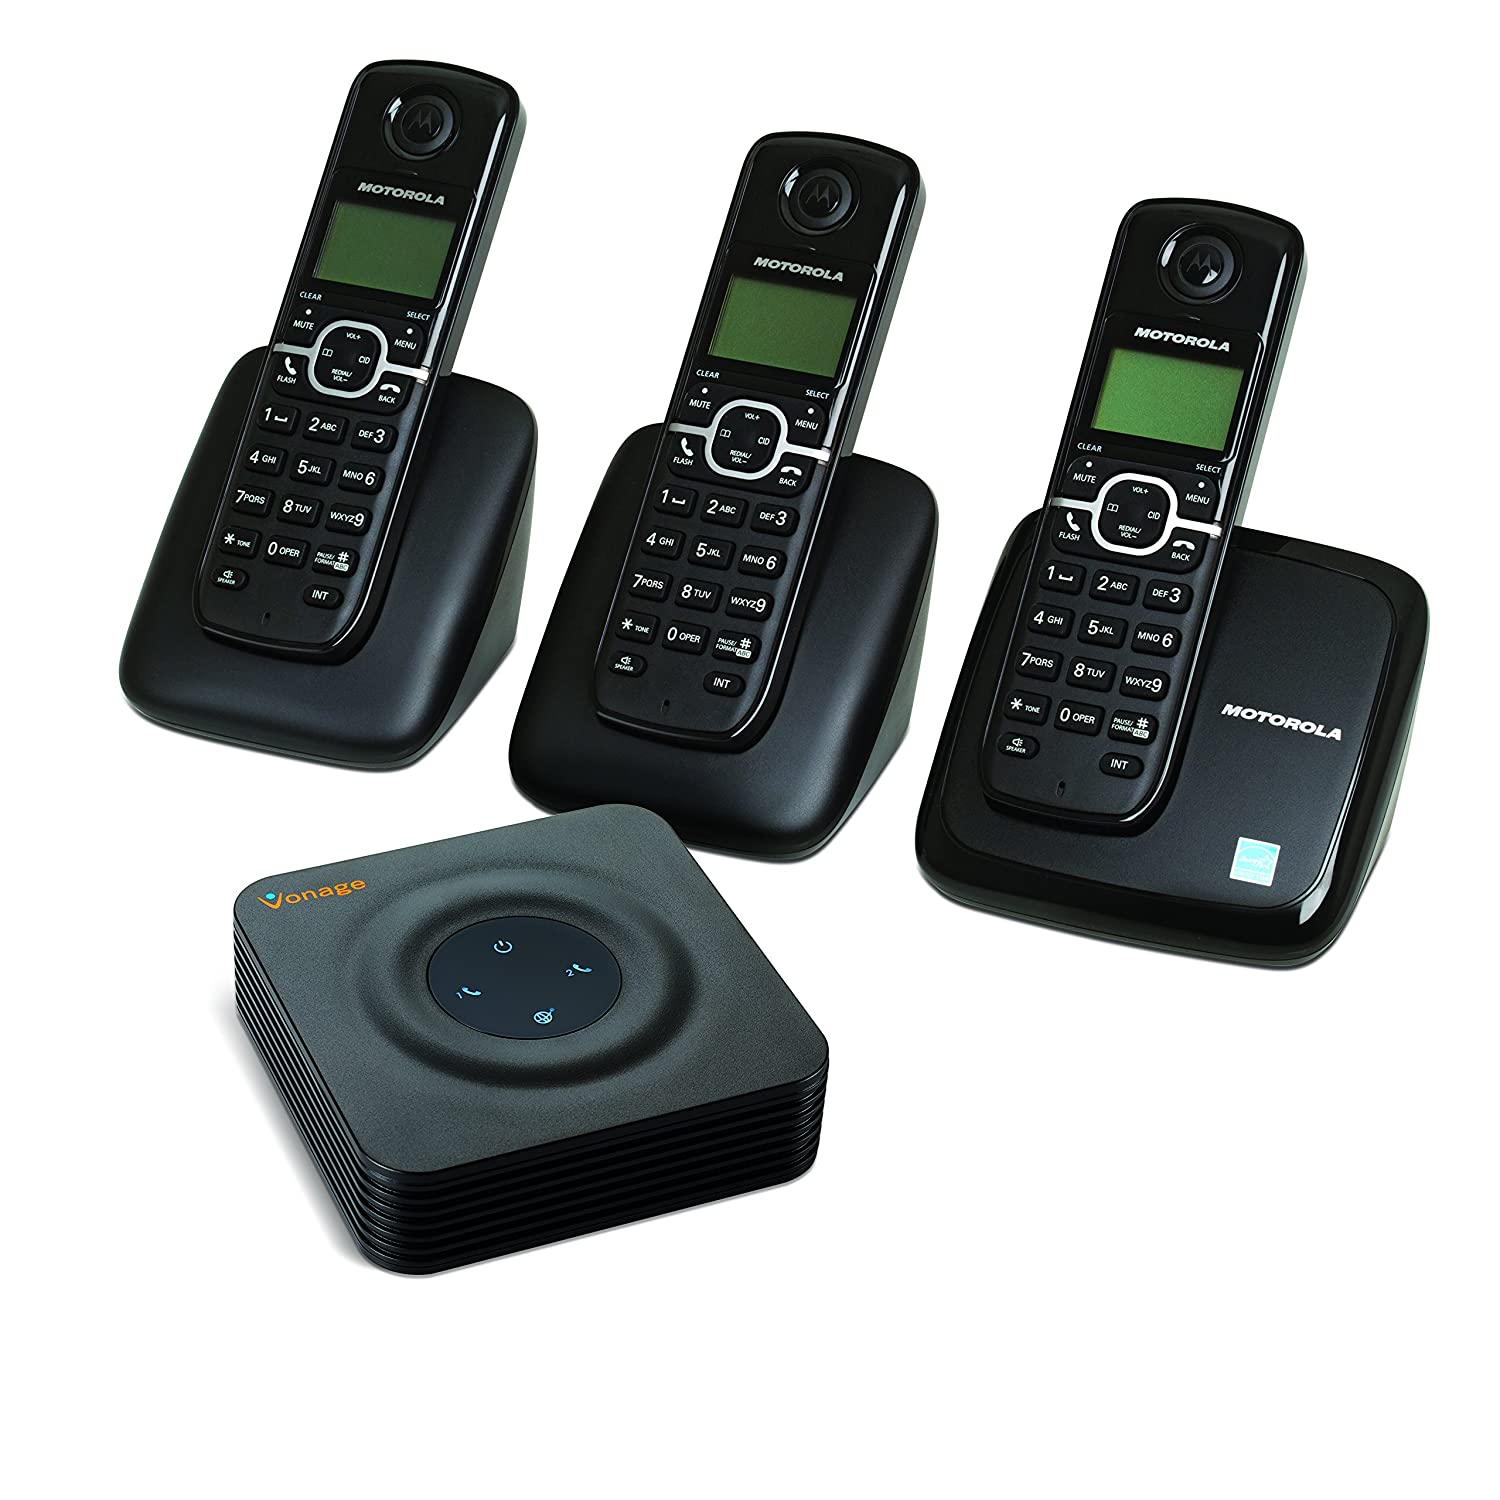 motorola 3 landline cordless telephone portable wireless mobil home office phone 829380848855 ebay. Black Bedroom Furniture Sets. Home Design Ideas